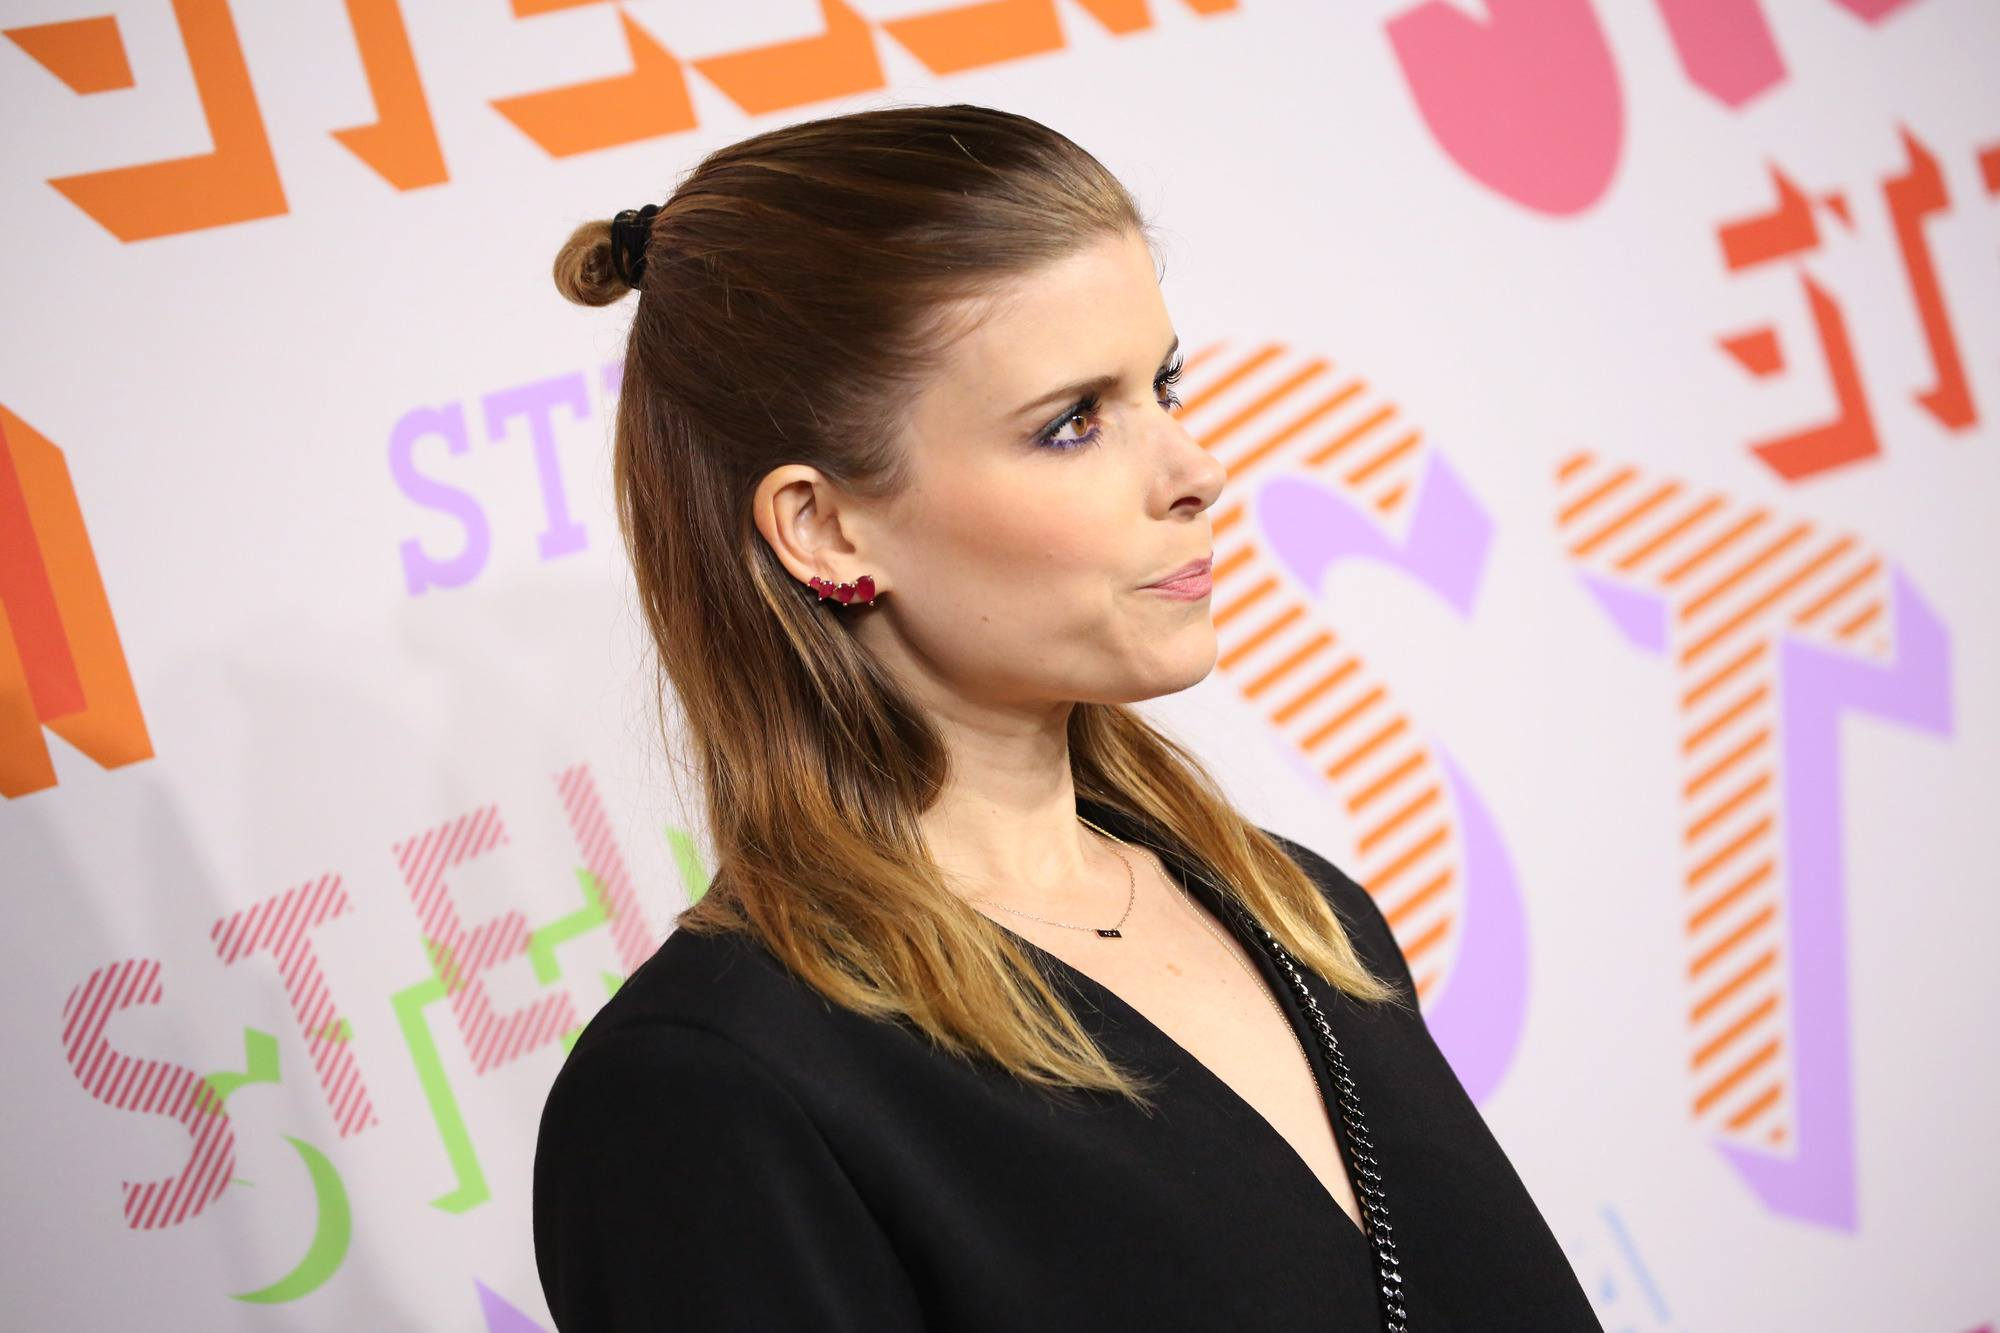 actress kate mara with shoulder length brunette hair in a half up topknot style